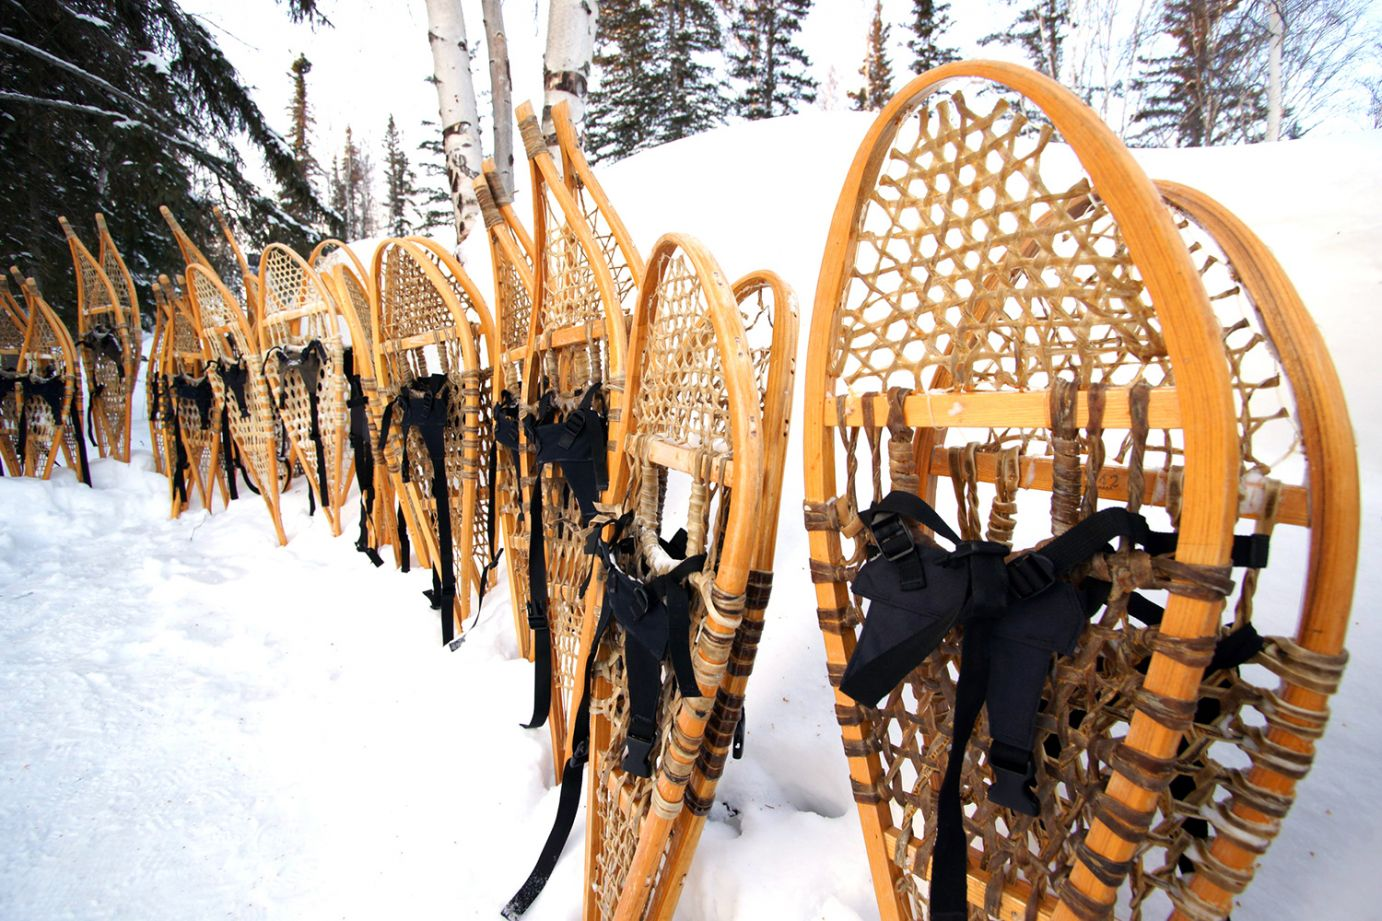 snowshoes-image.jpg